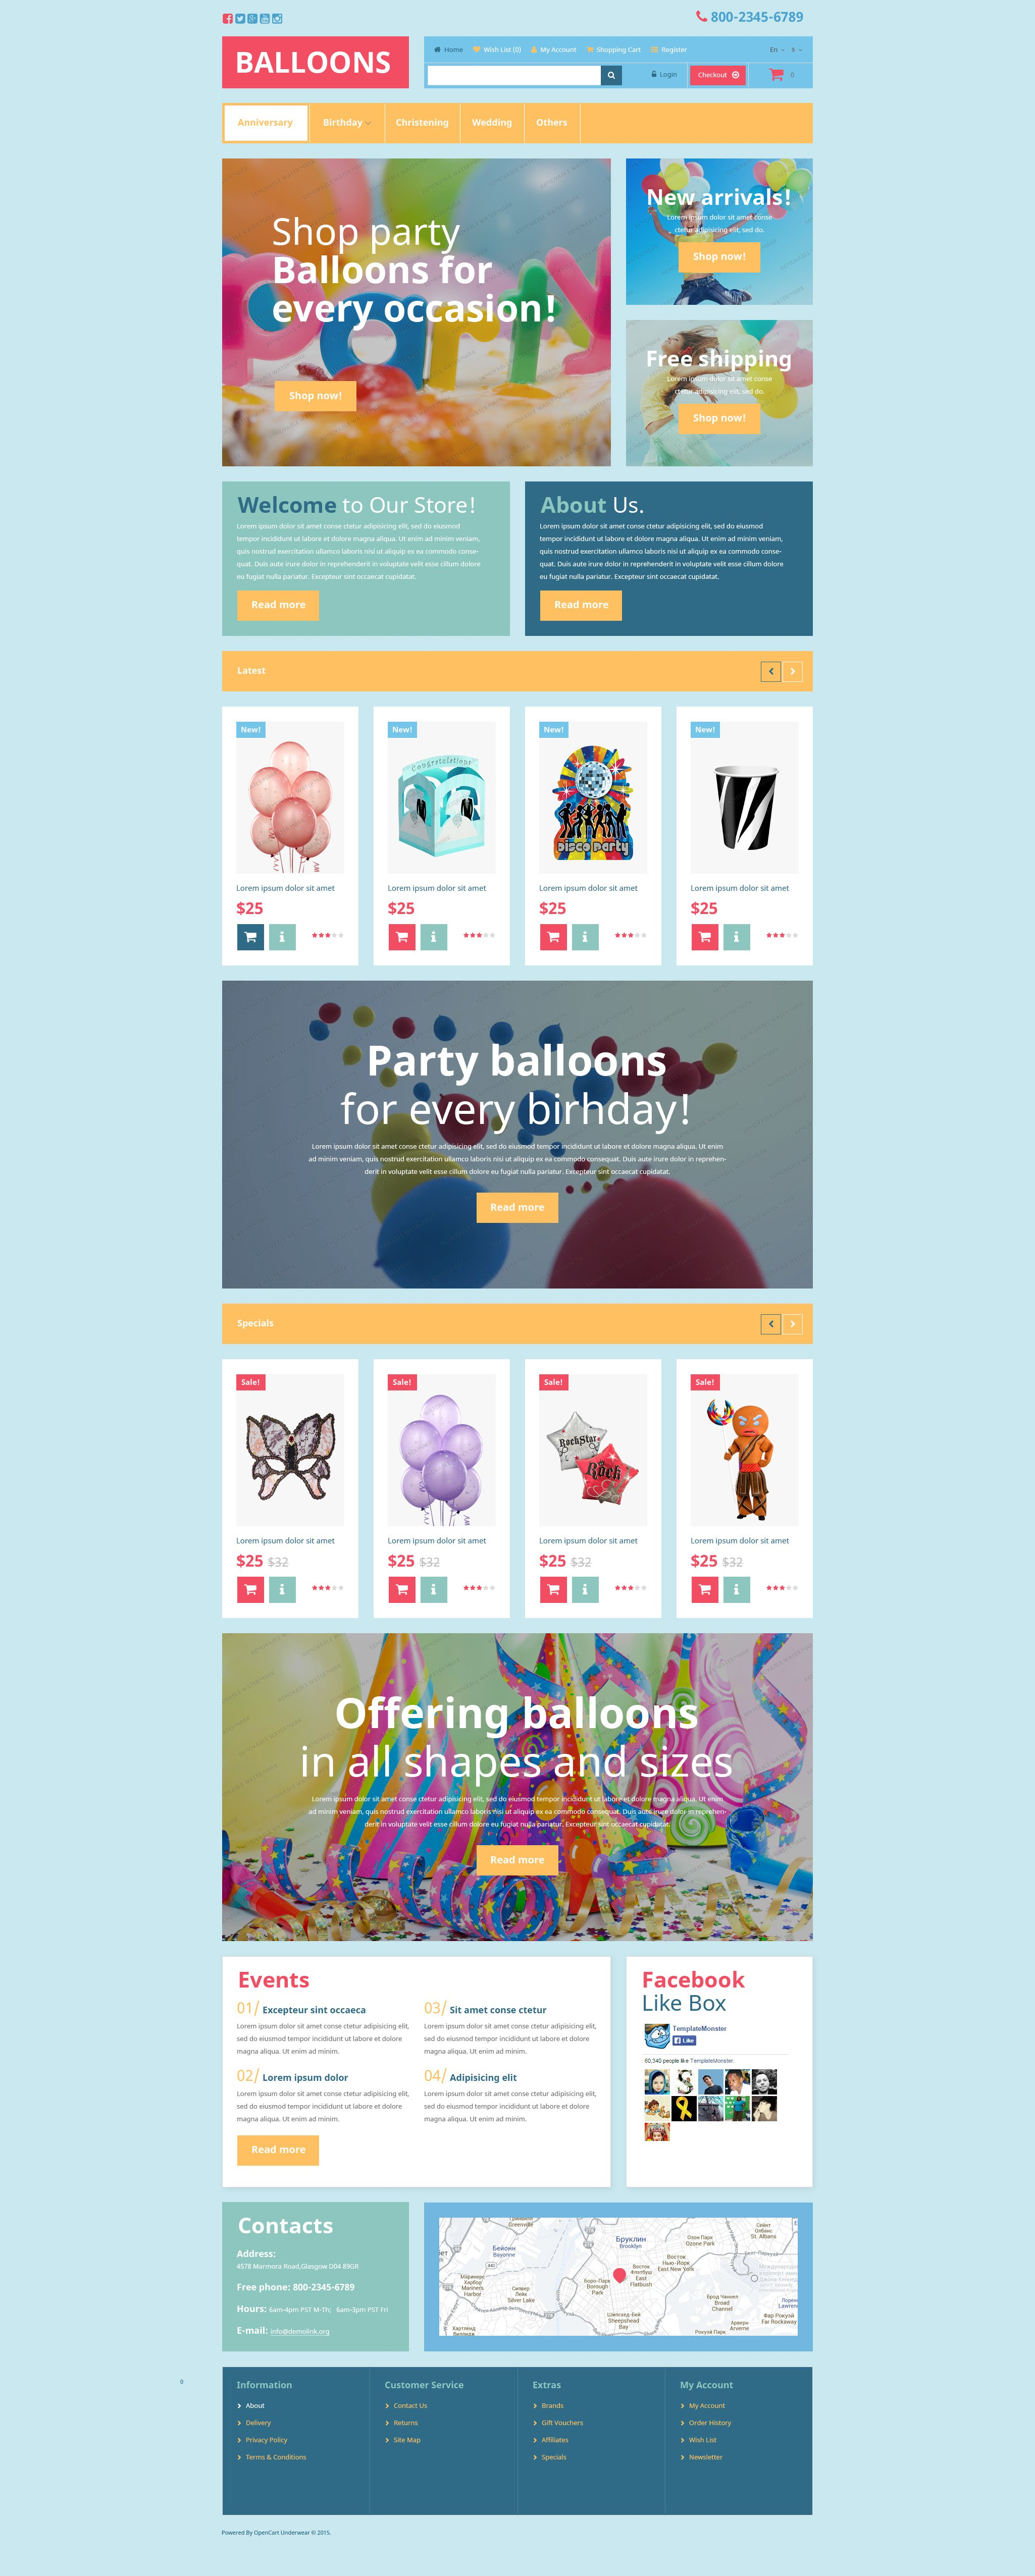 The Balloons Get OpenCart Design 53448, one of the best OpenCart templates of its kind (entertainment, most popular), also known as balloons get OpenCart template, balloon OpenCart template, occasion OpenCart template, party OpenCart template, kids OpenCart template, foil OpenCart template, latex OpenCart template, Helium store and related with balloons get, balloon, occasion, party, kids, foil, latex, Helium store, etc.